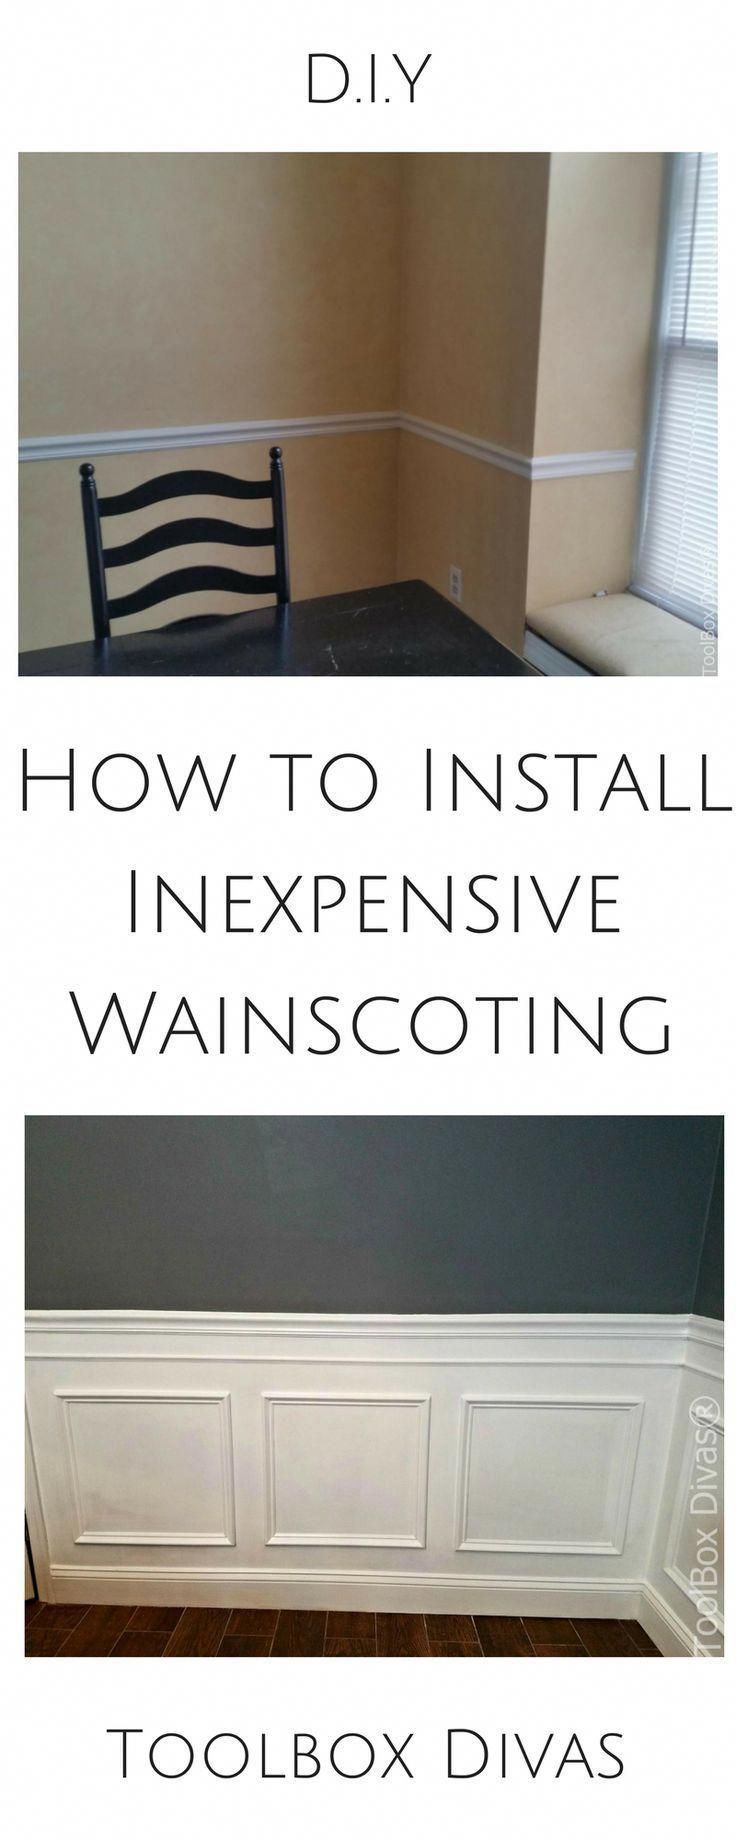 DIY #Easy #to #install #Wainscoting. #Picture #frame #moulding #made #easy. #molding #trim #work #dining #room # #Toolboxdivas #ToolBox #Divas #| #Easy #DIY #Projects #+ #Woodworking #+ #Home #Improvement # #Wainscoting # #woodworktrimwork DIY #Easy #to #install #Wainscoting. #Picture #frame #moulding #made #easy. #molding #trim #work #dining #room # #Toolboxdivas #ToolBox #Divas #| #Easy #DIY #Projects #+ #Woodworking #+ #Home #Improvement # #Wainscoting # #woodworktrimwork